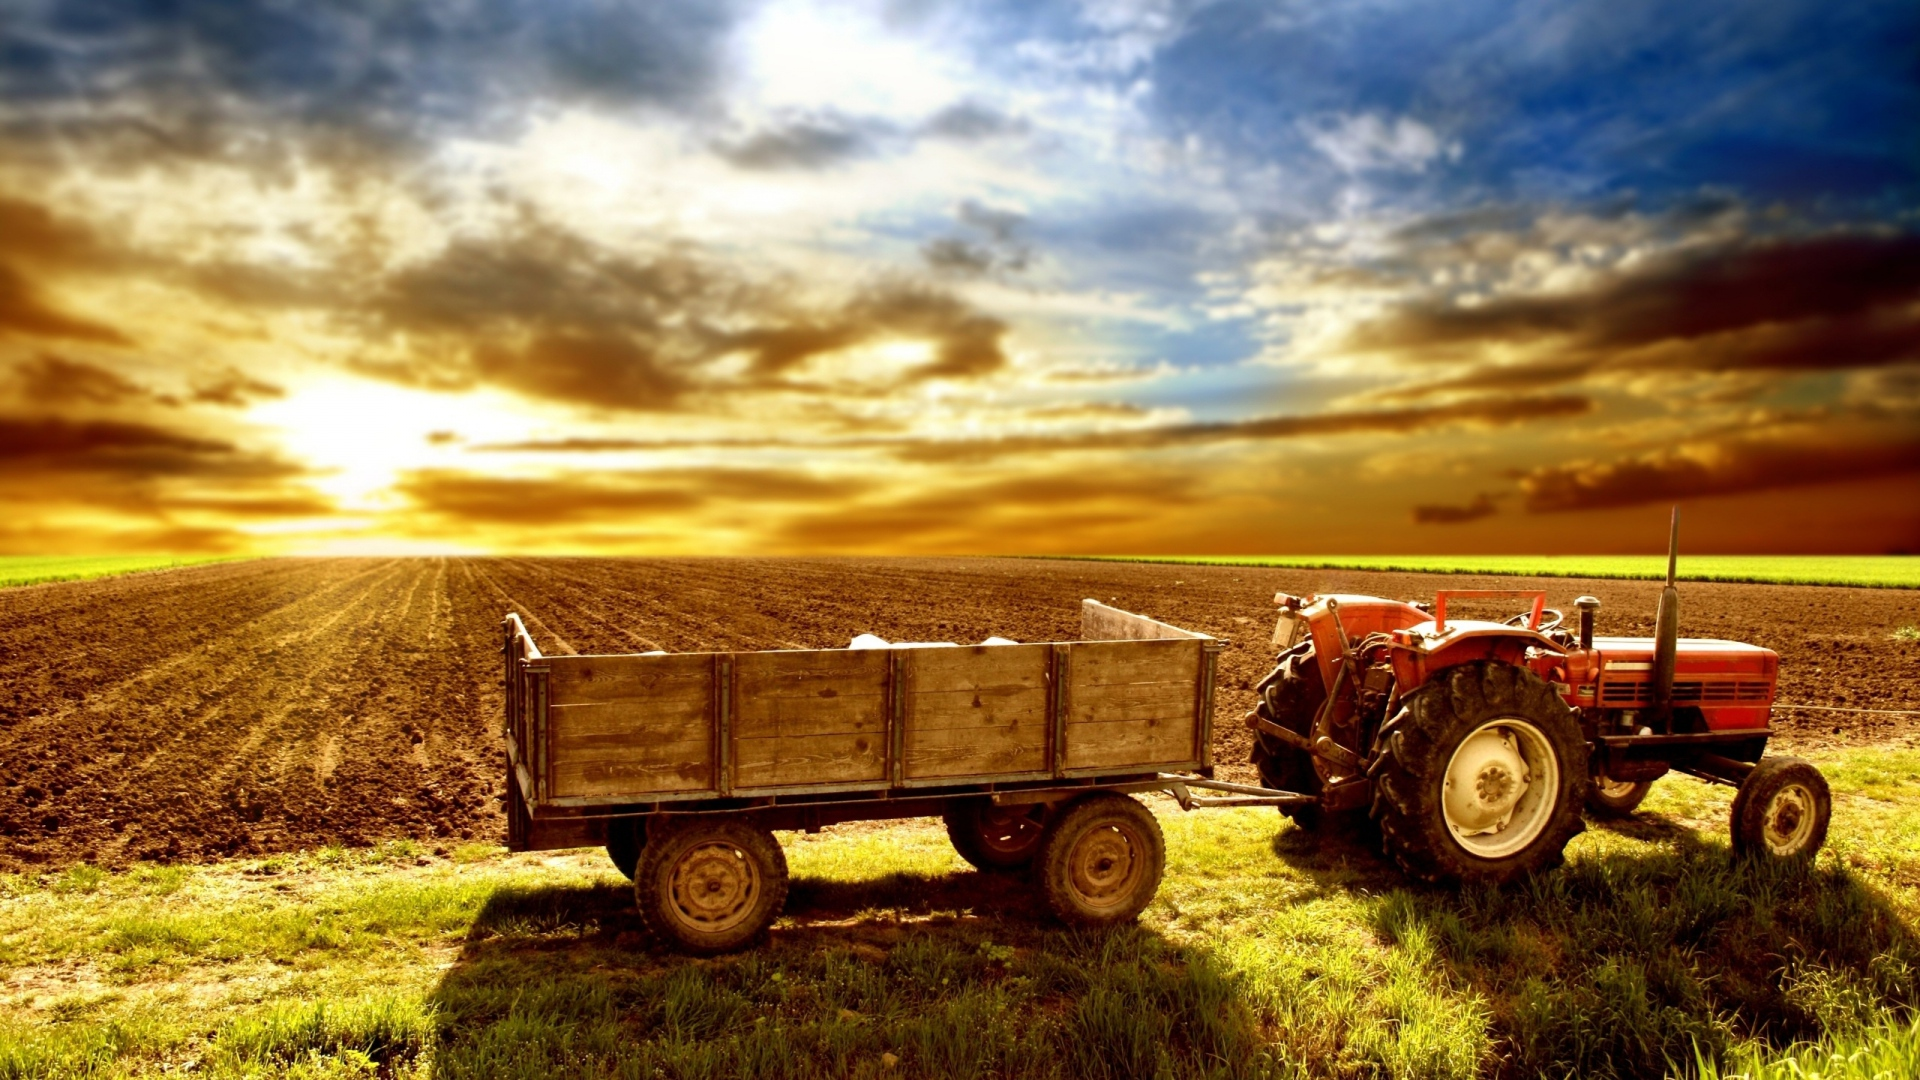 agriculture-hd-wallpaper-wp3401174